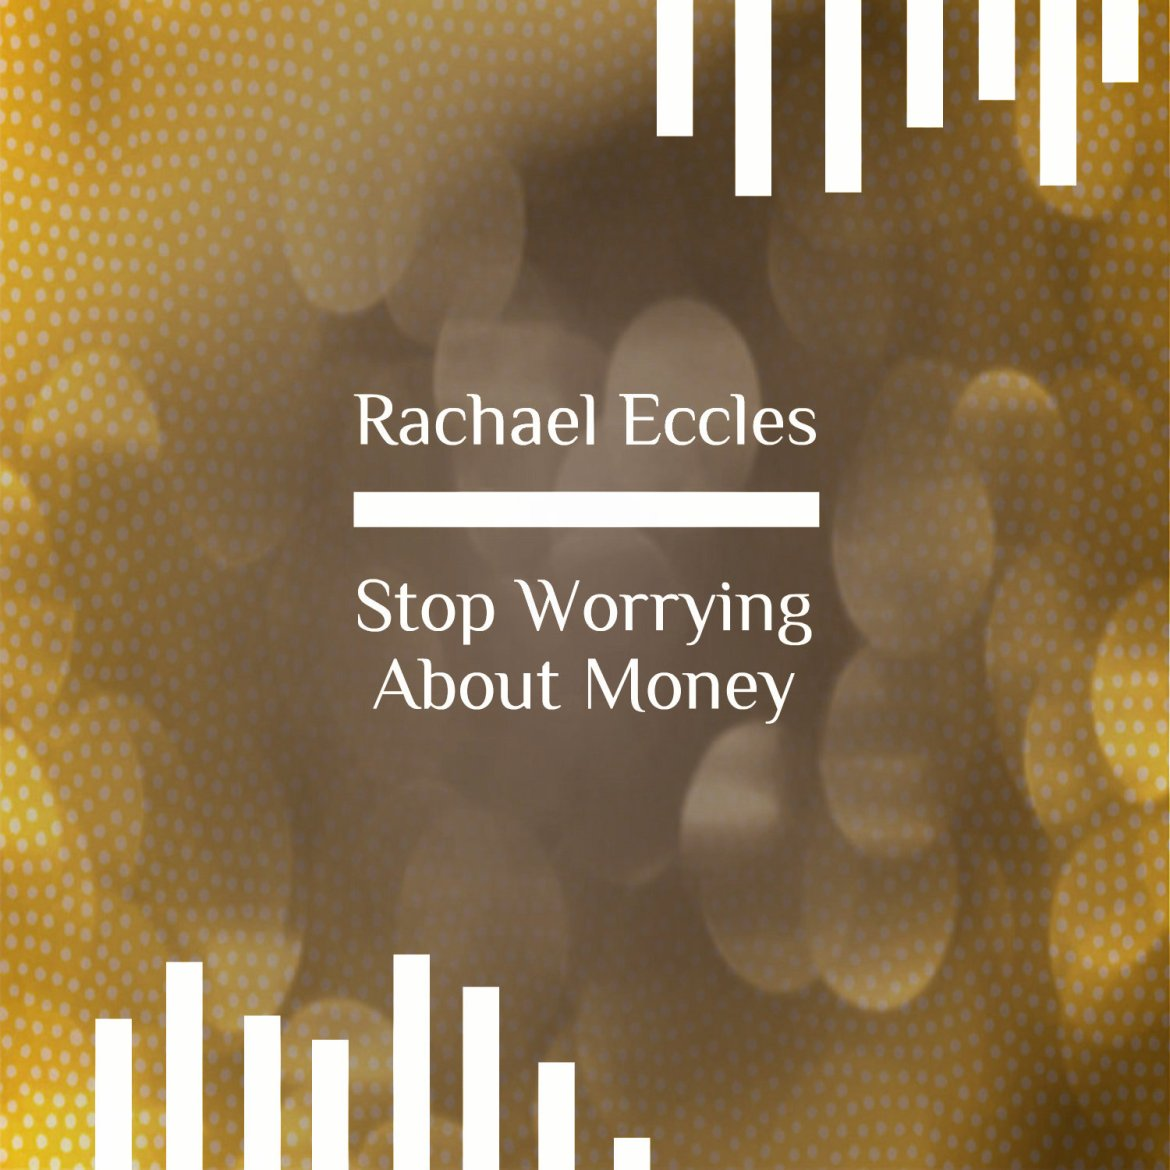 Stop worrying about money, take control and ease anxiety completely, Self hypnosis hypnotherapy mp3 00359b